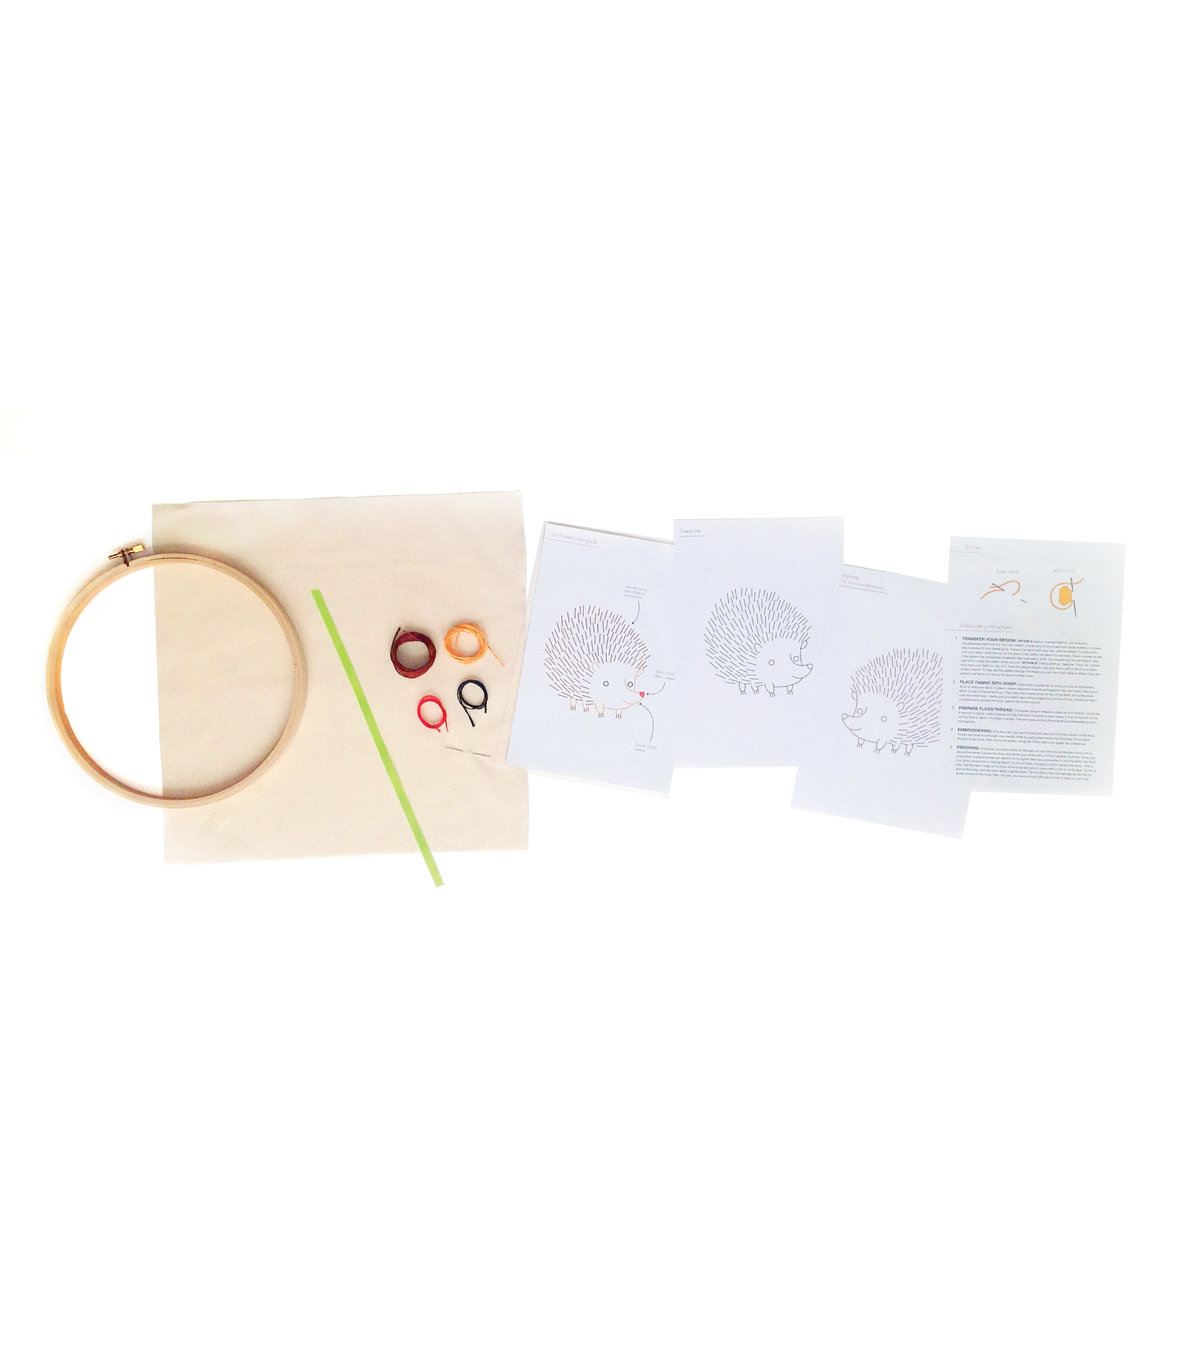 Monkey Hand Embroidery Wall Art Kit